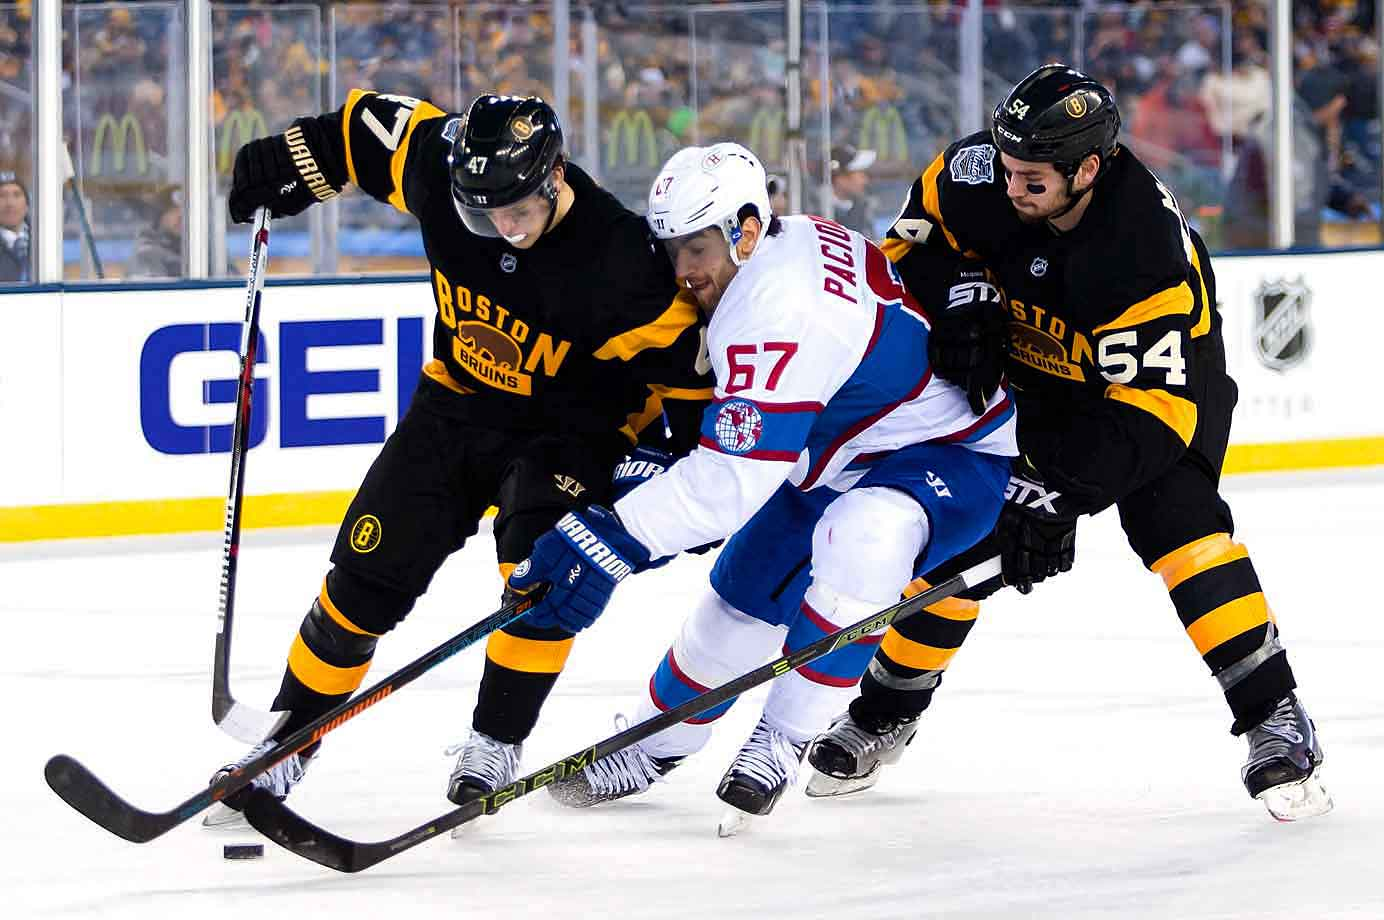 Canadiens captain Max Pacioretty wheedles his way between Boston's Torey Krug and Adam McQuaid.